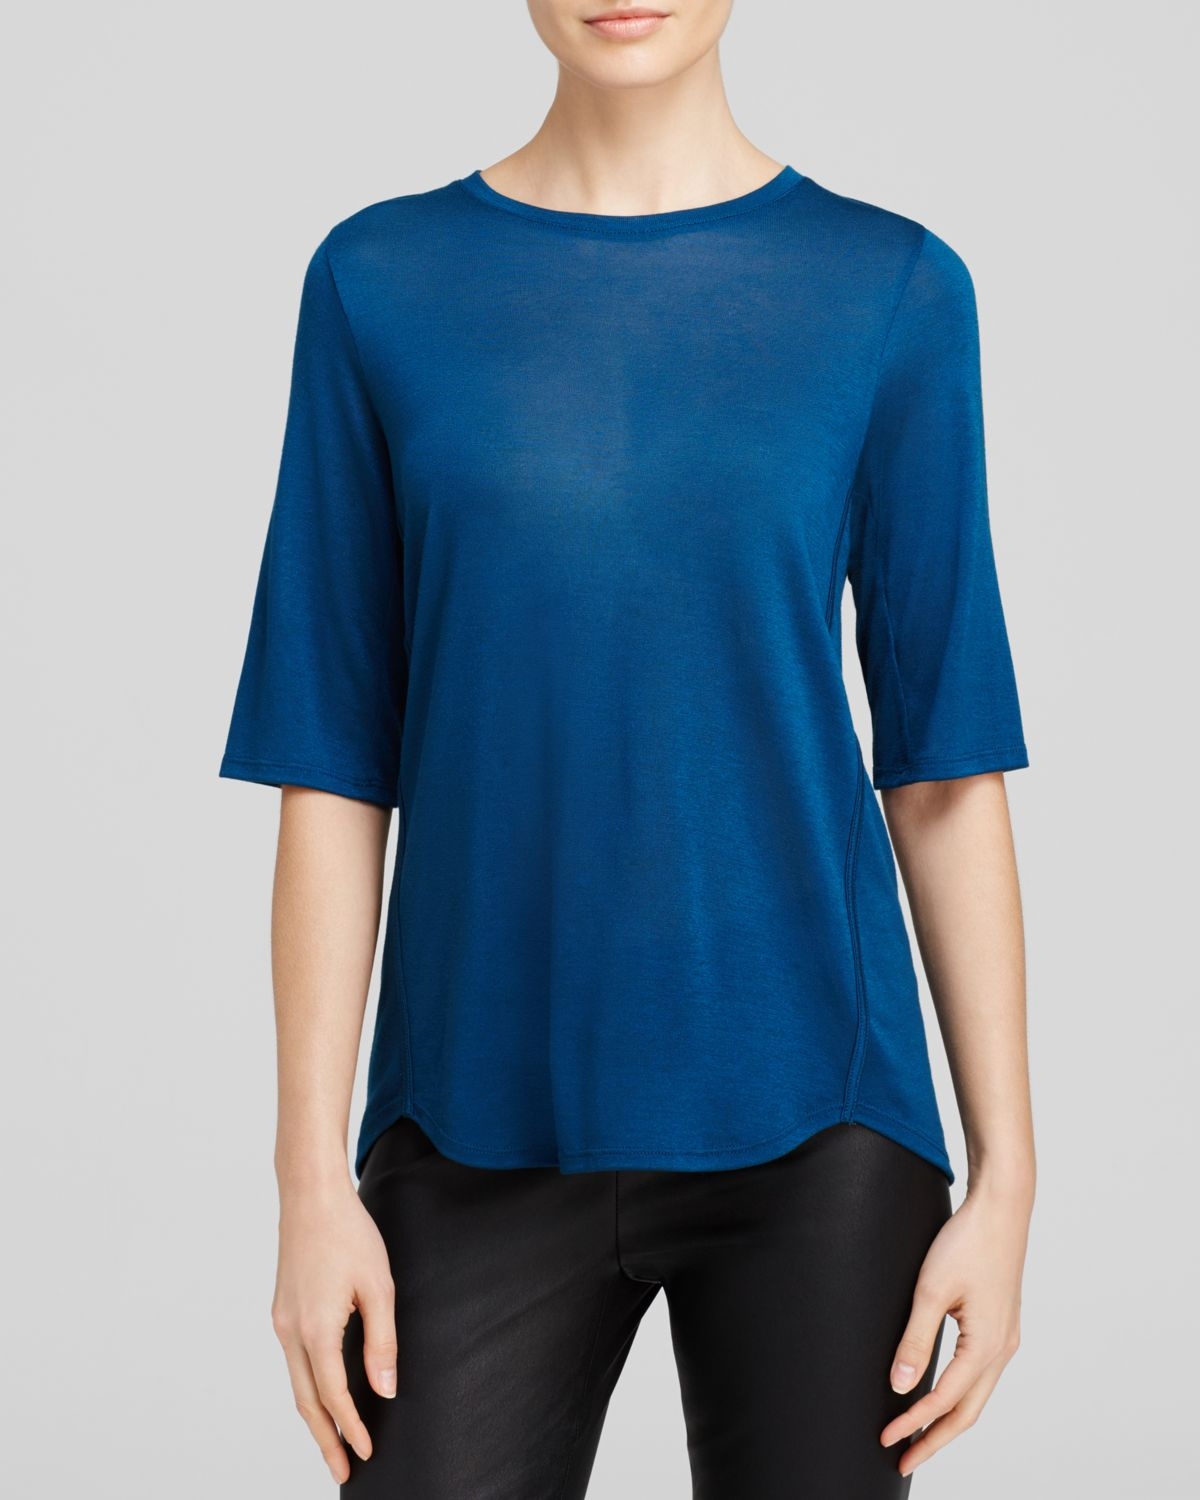 Vince elbow sleeve tee in blue lake lyst for Vince tee shirts sale